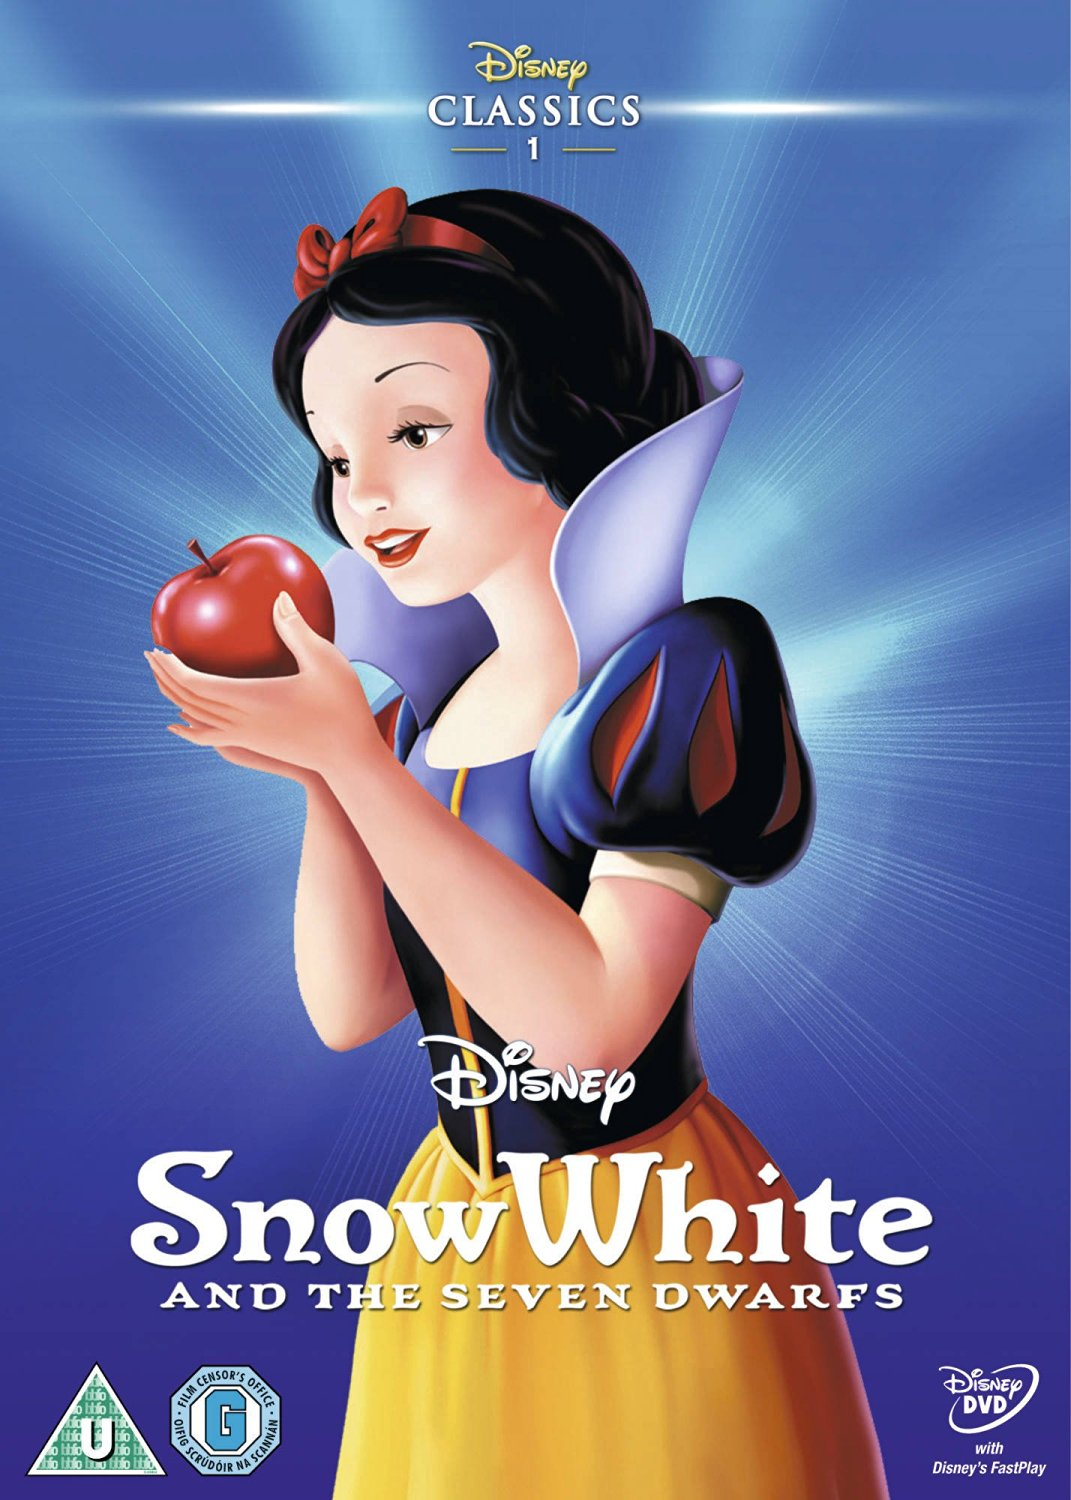 Snow white and the seven dwarfs uk dvd 2014 limited edition slip cover jpg